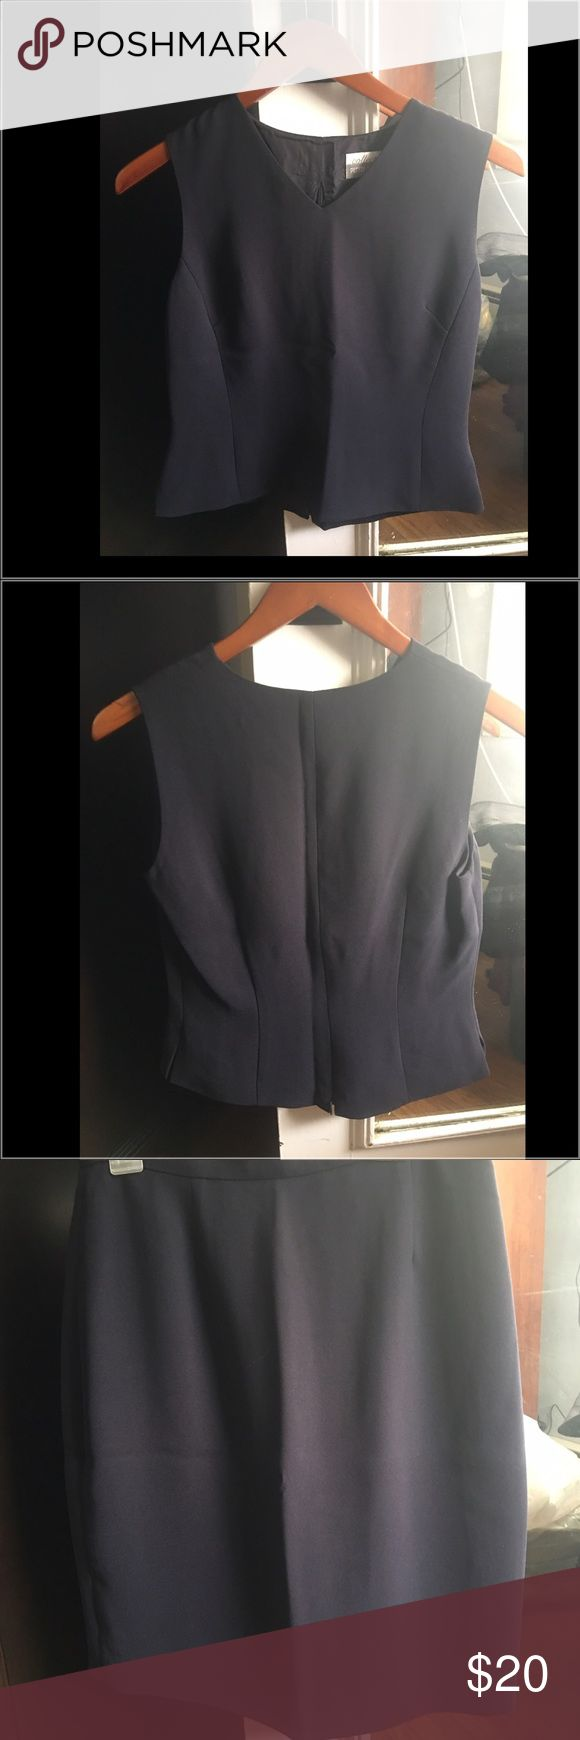 Classic Women's Navy 2 piece business suit Timeless navy Petite Sophisticate Collectibles 2 piece suit. Top is sleeveless with V neck front. Zips up back worn untucked with skirt. Skirt is above the knee with back zip and button. This is being sold together only. Petite Sophisticate Collectibles Other